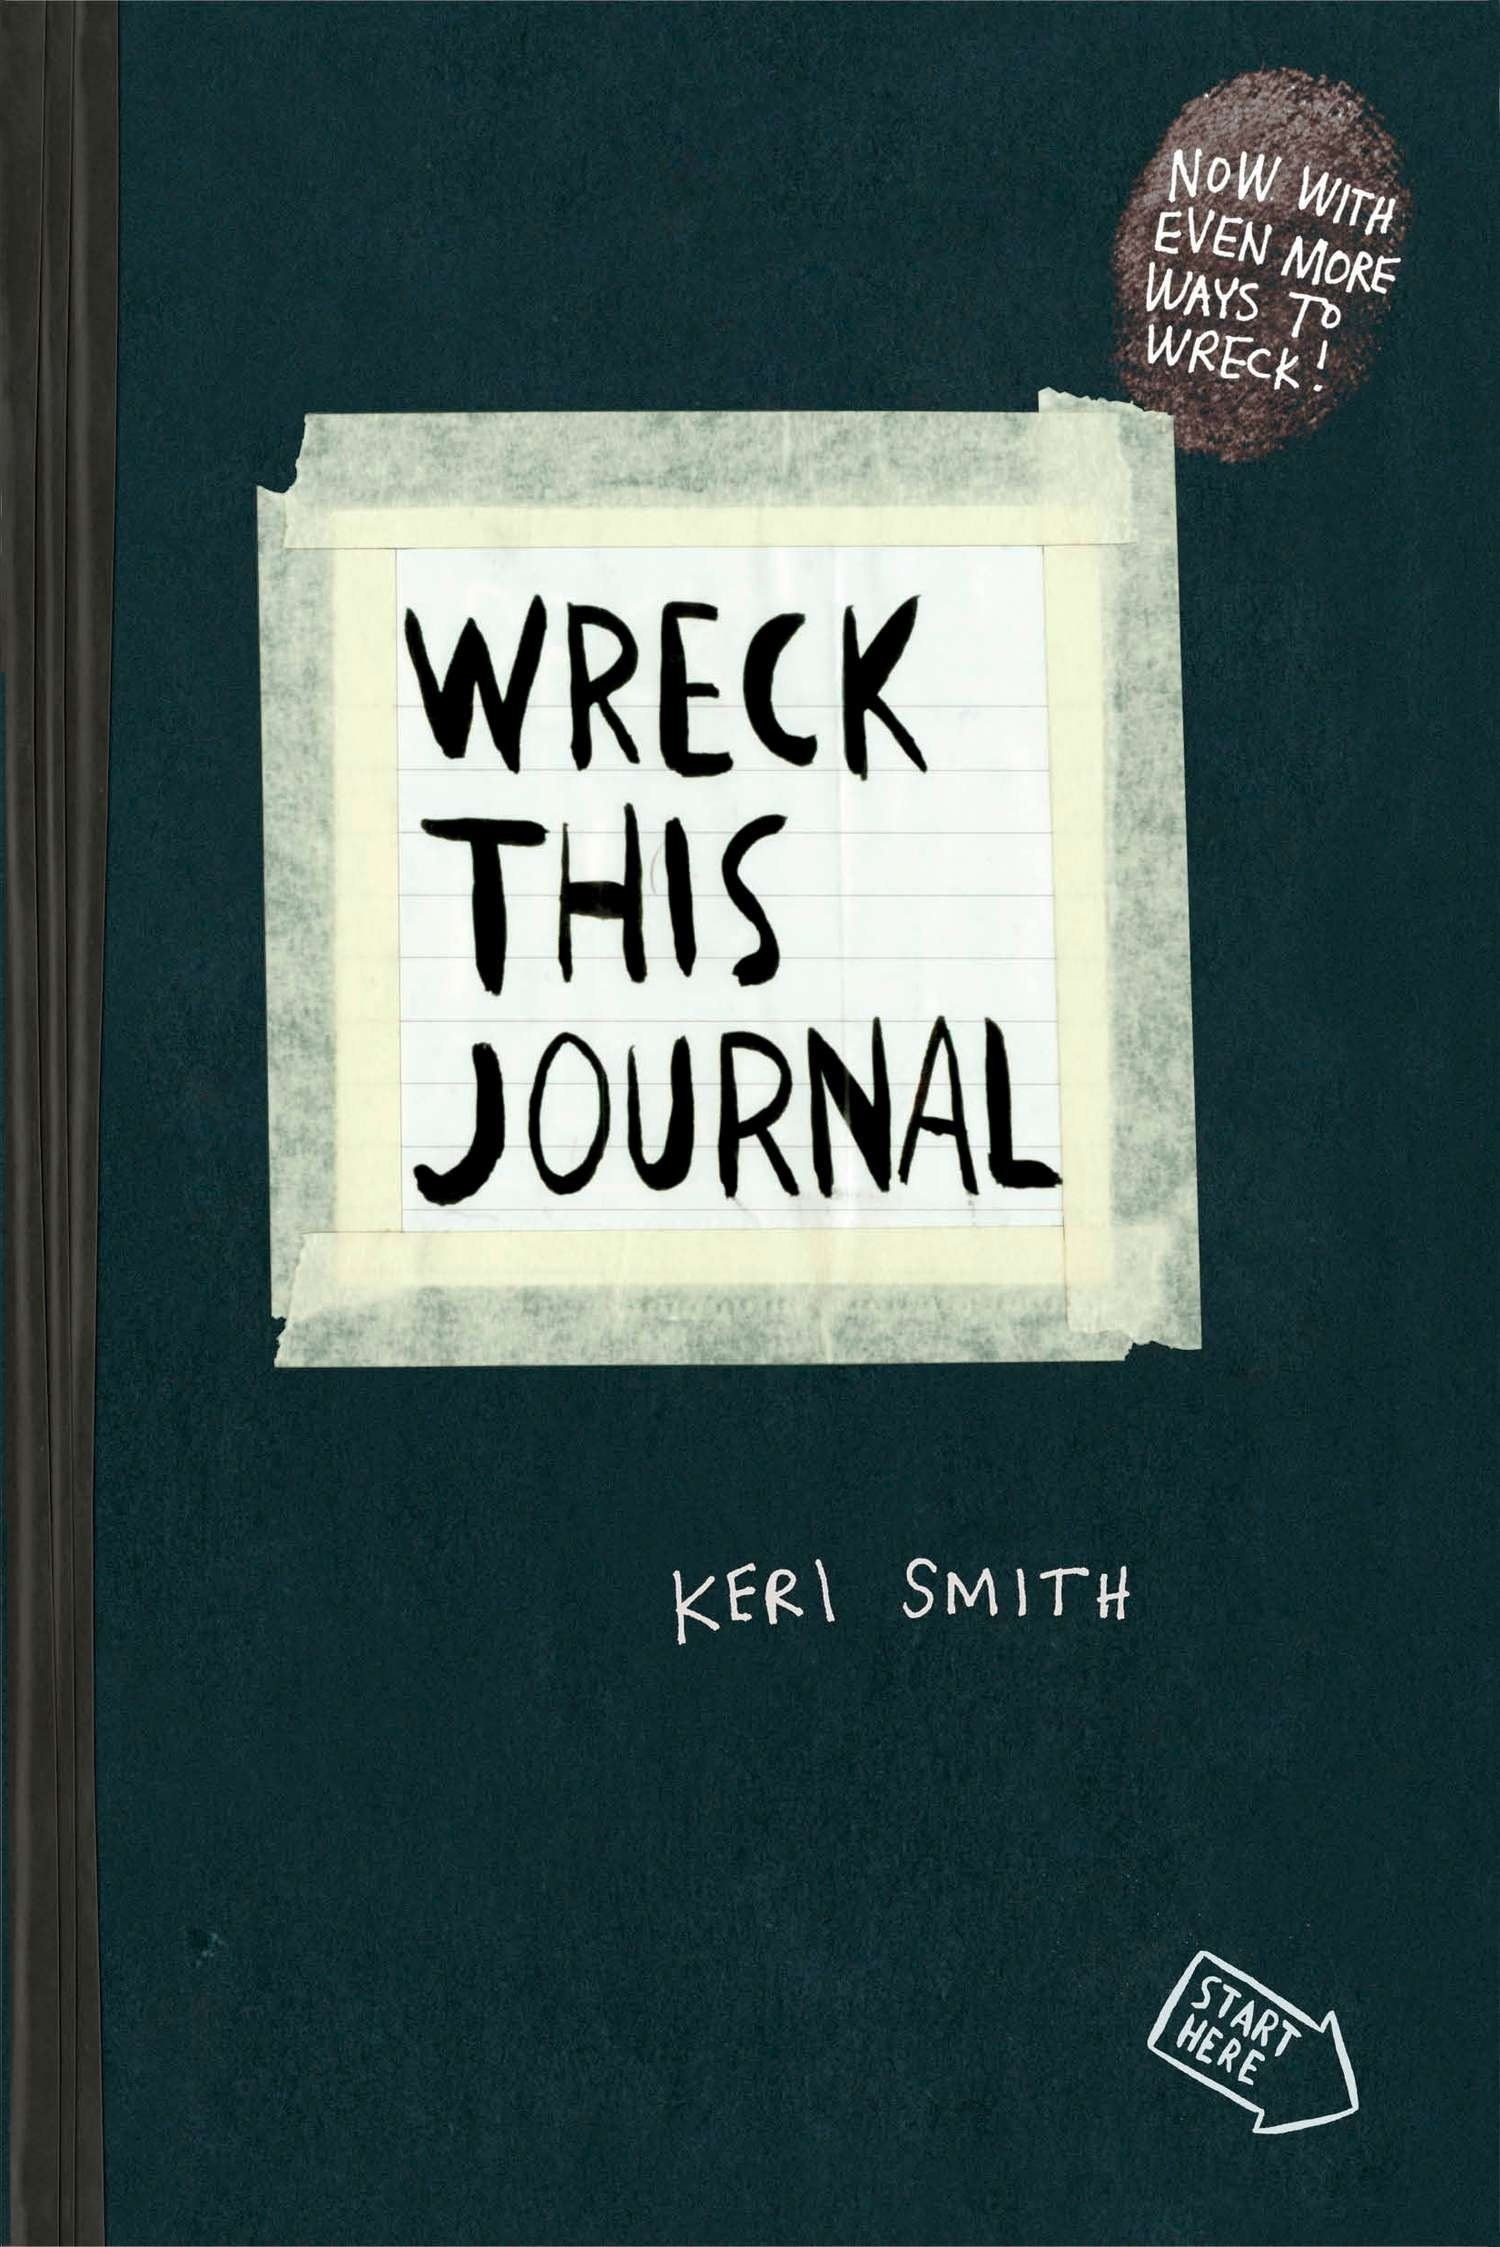 The cover of Wreck This Journal